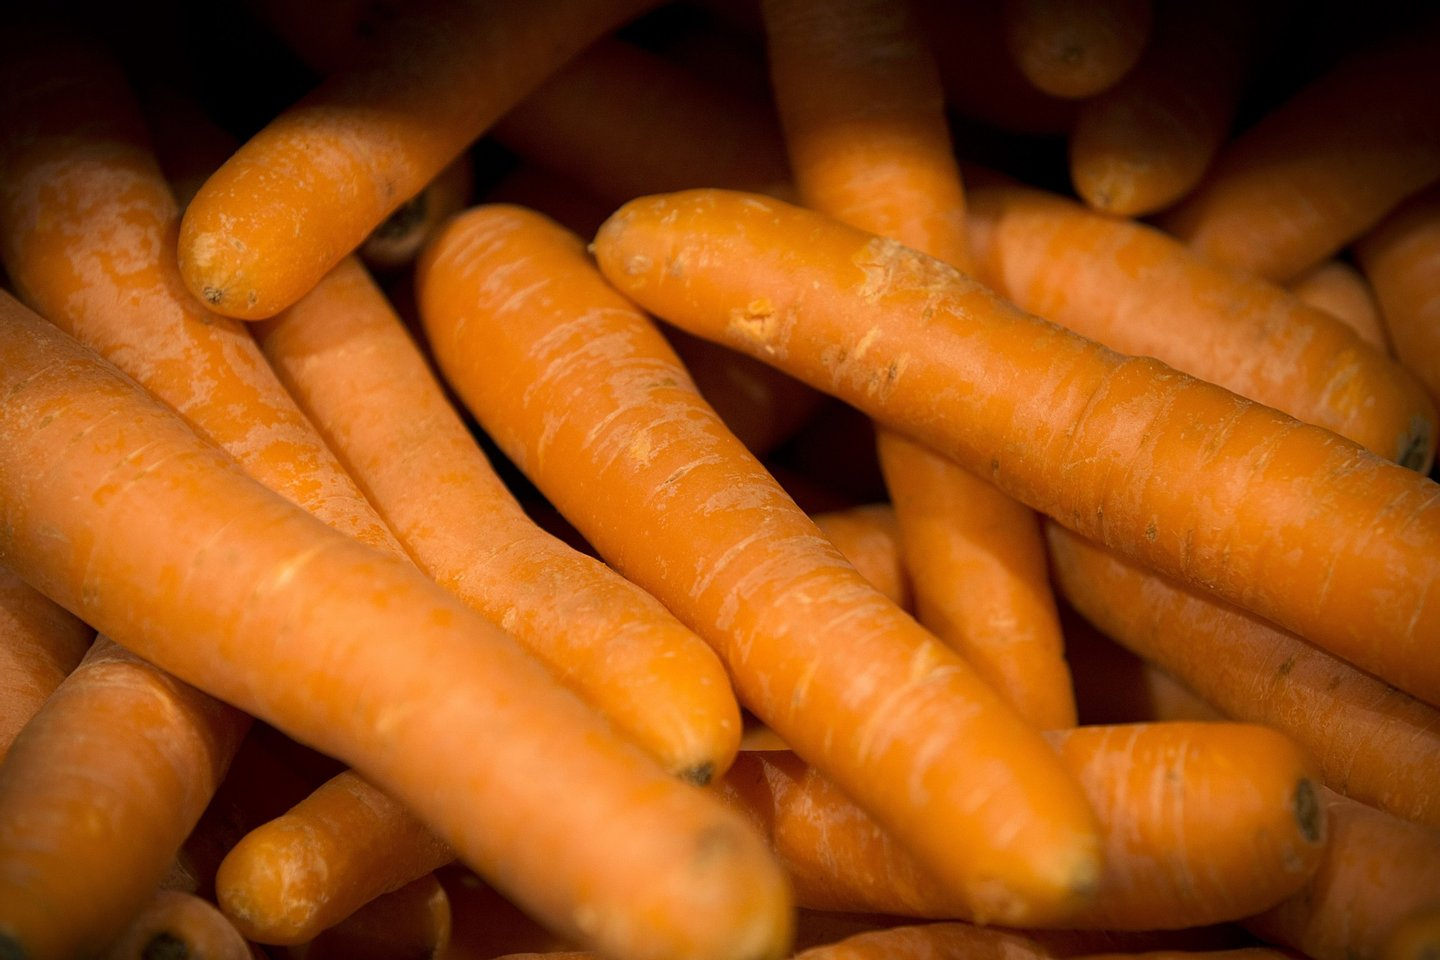 This picture taken on May 9, 2014 shows carrots on a supermar0ket display in Paris, France. AFP PHOTO /JOEL SAGET        (Photo credit should read JOEL SAGET/AFP/Getty Images)